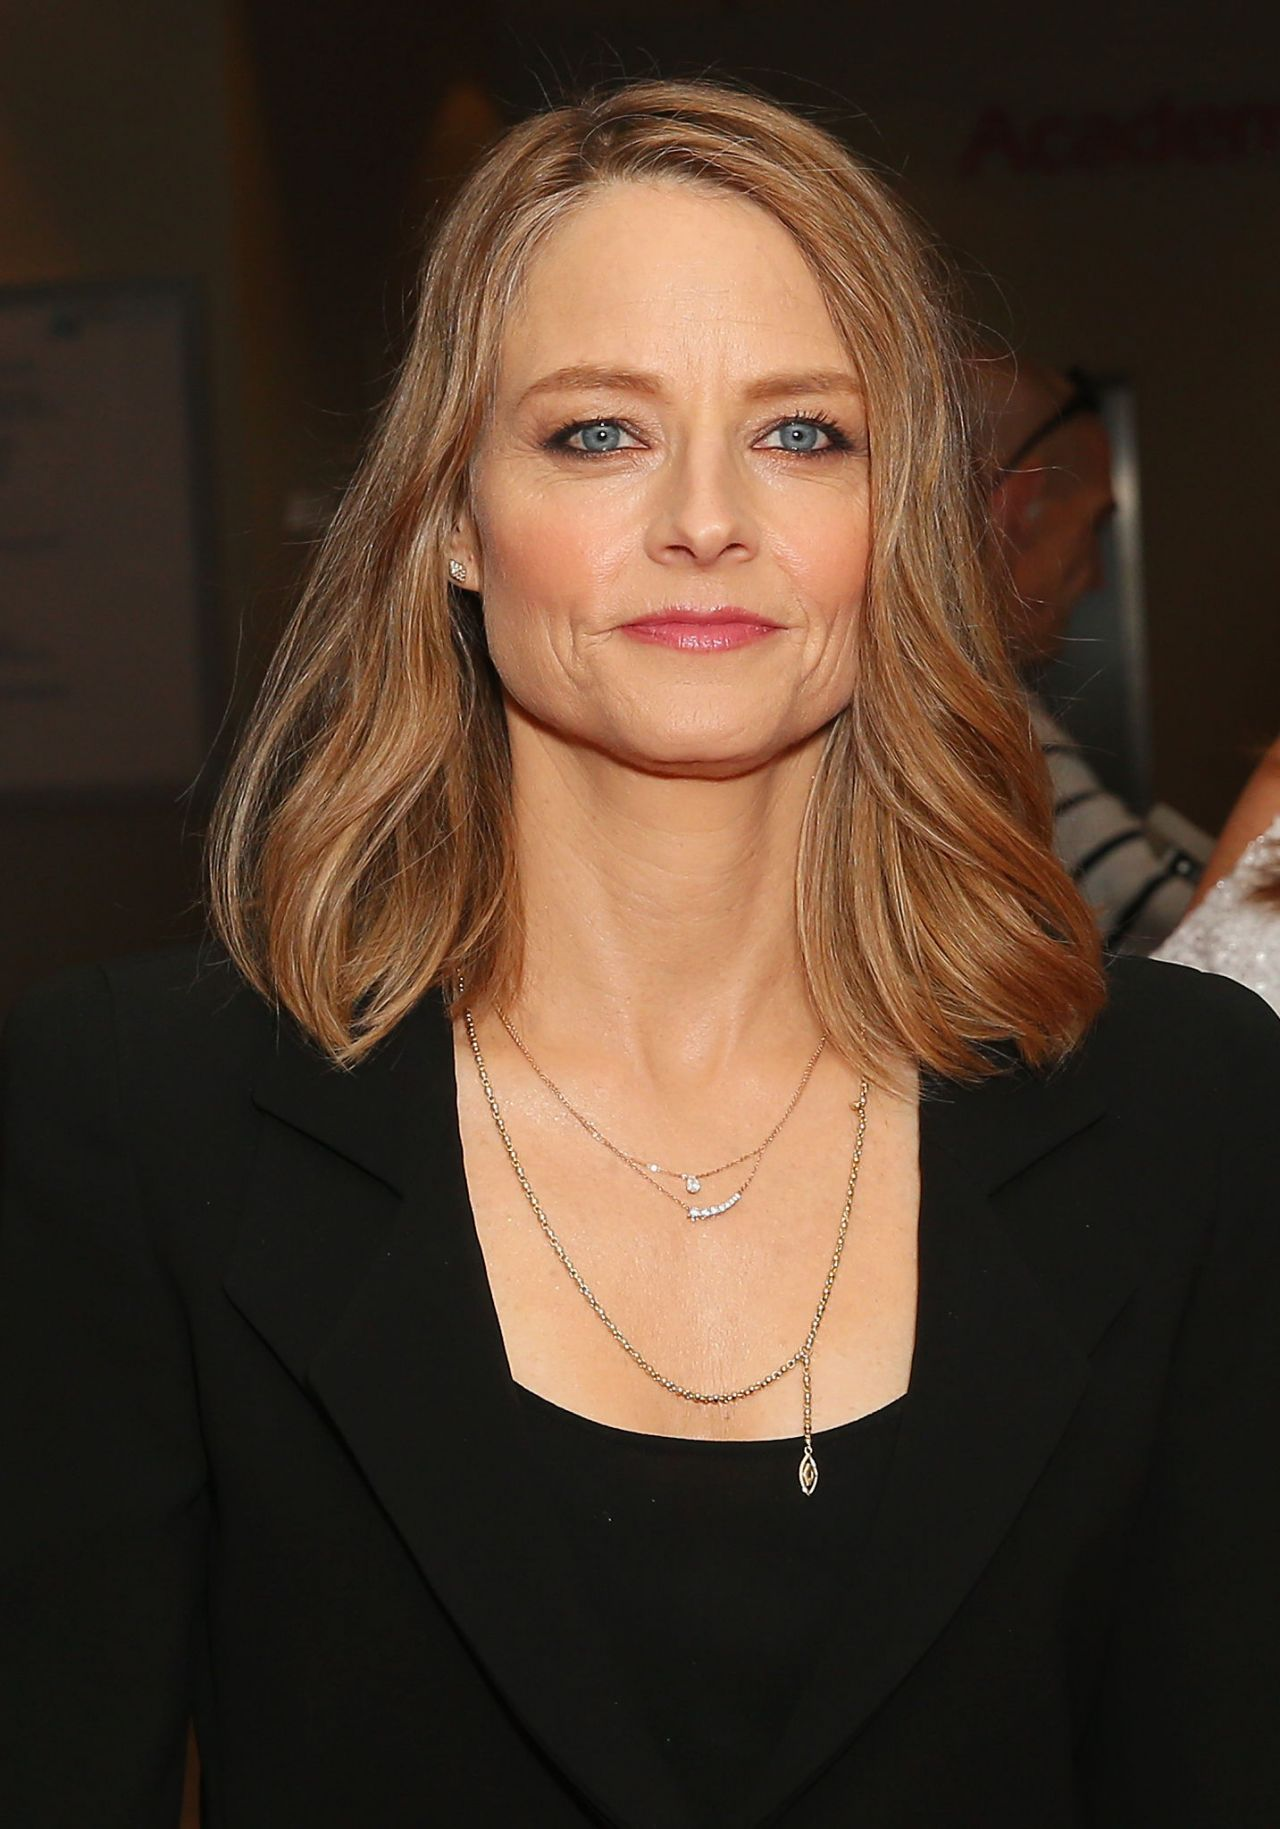 jodie foster - photo #21